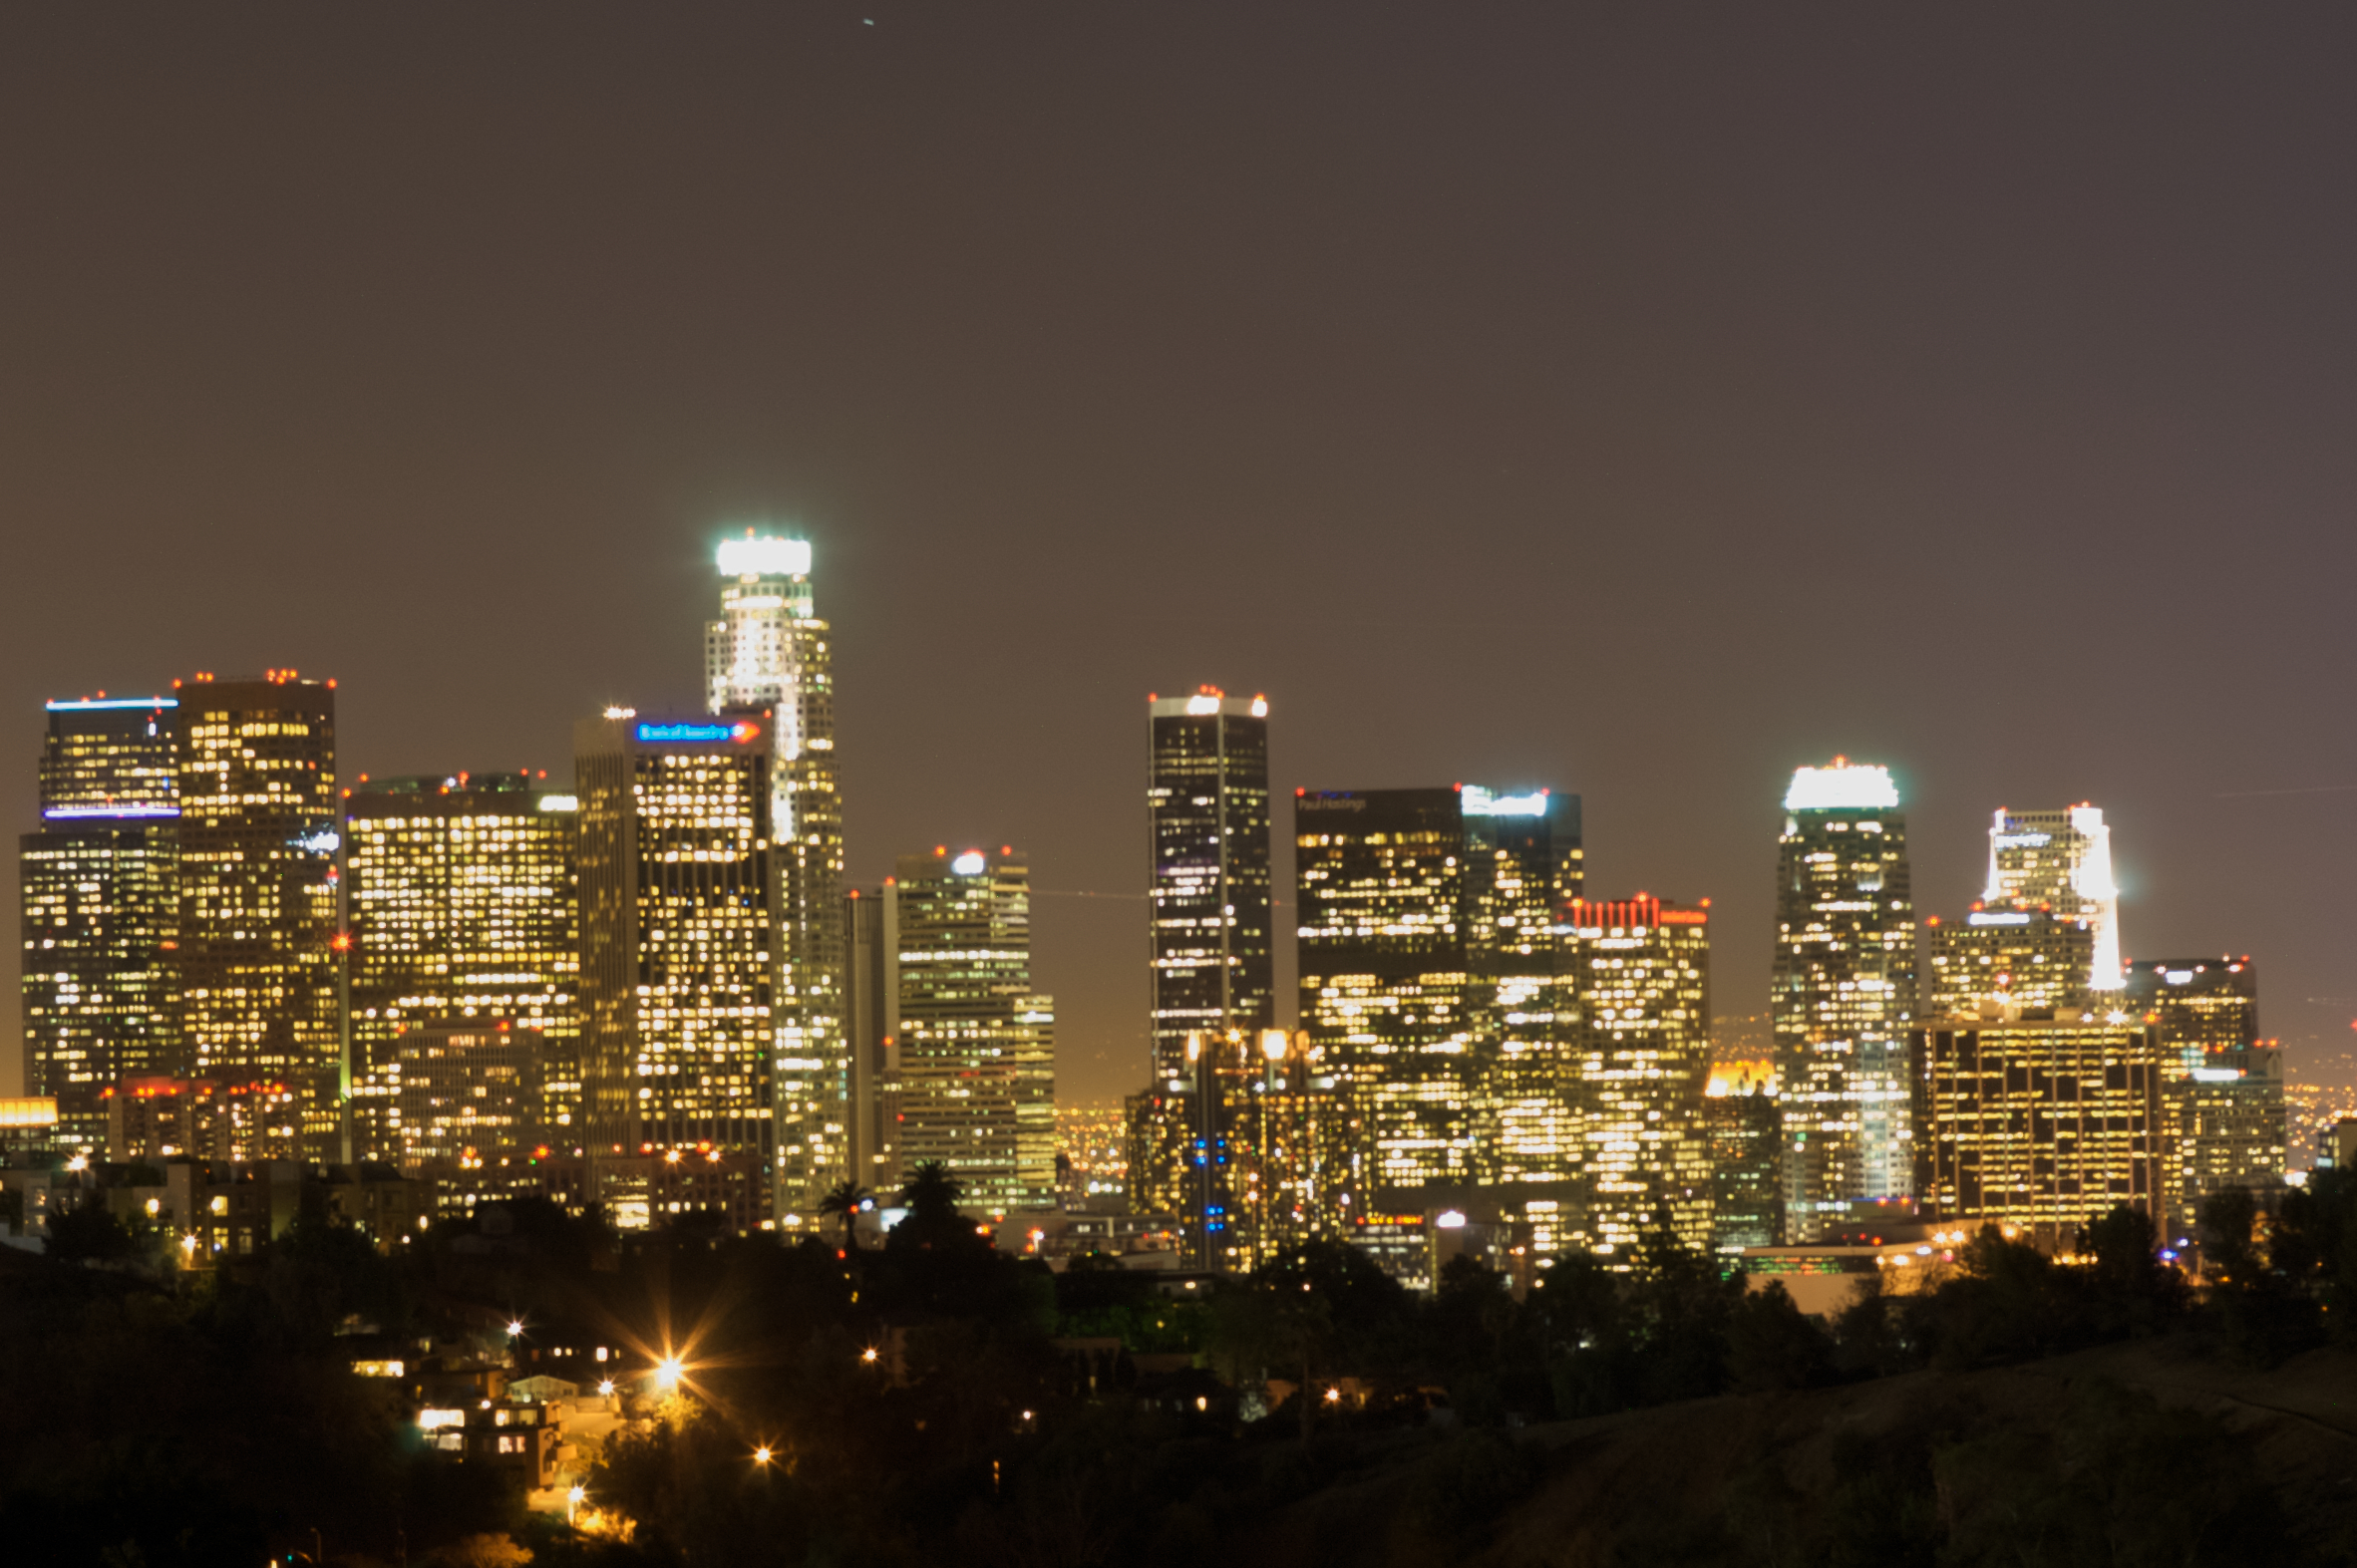 Los_Angeles_Skyline_at_Night.jpg